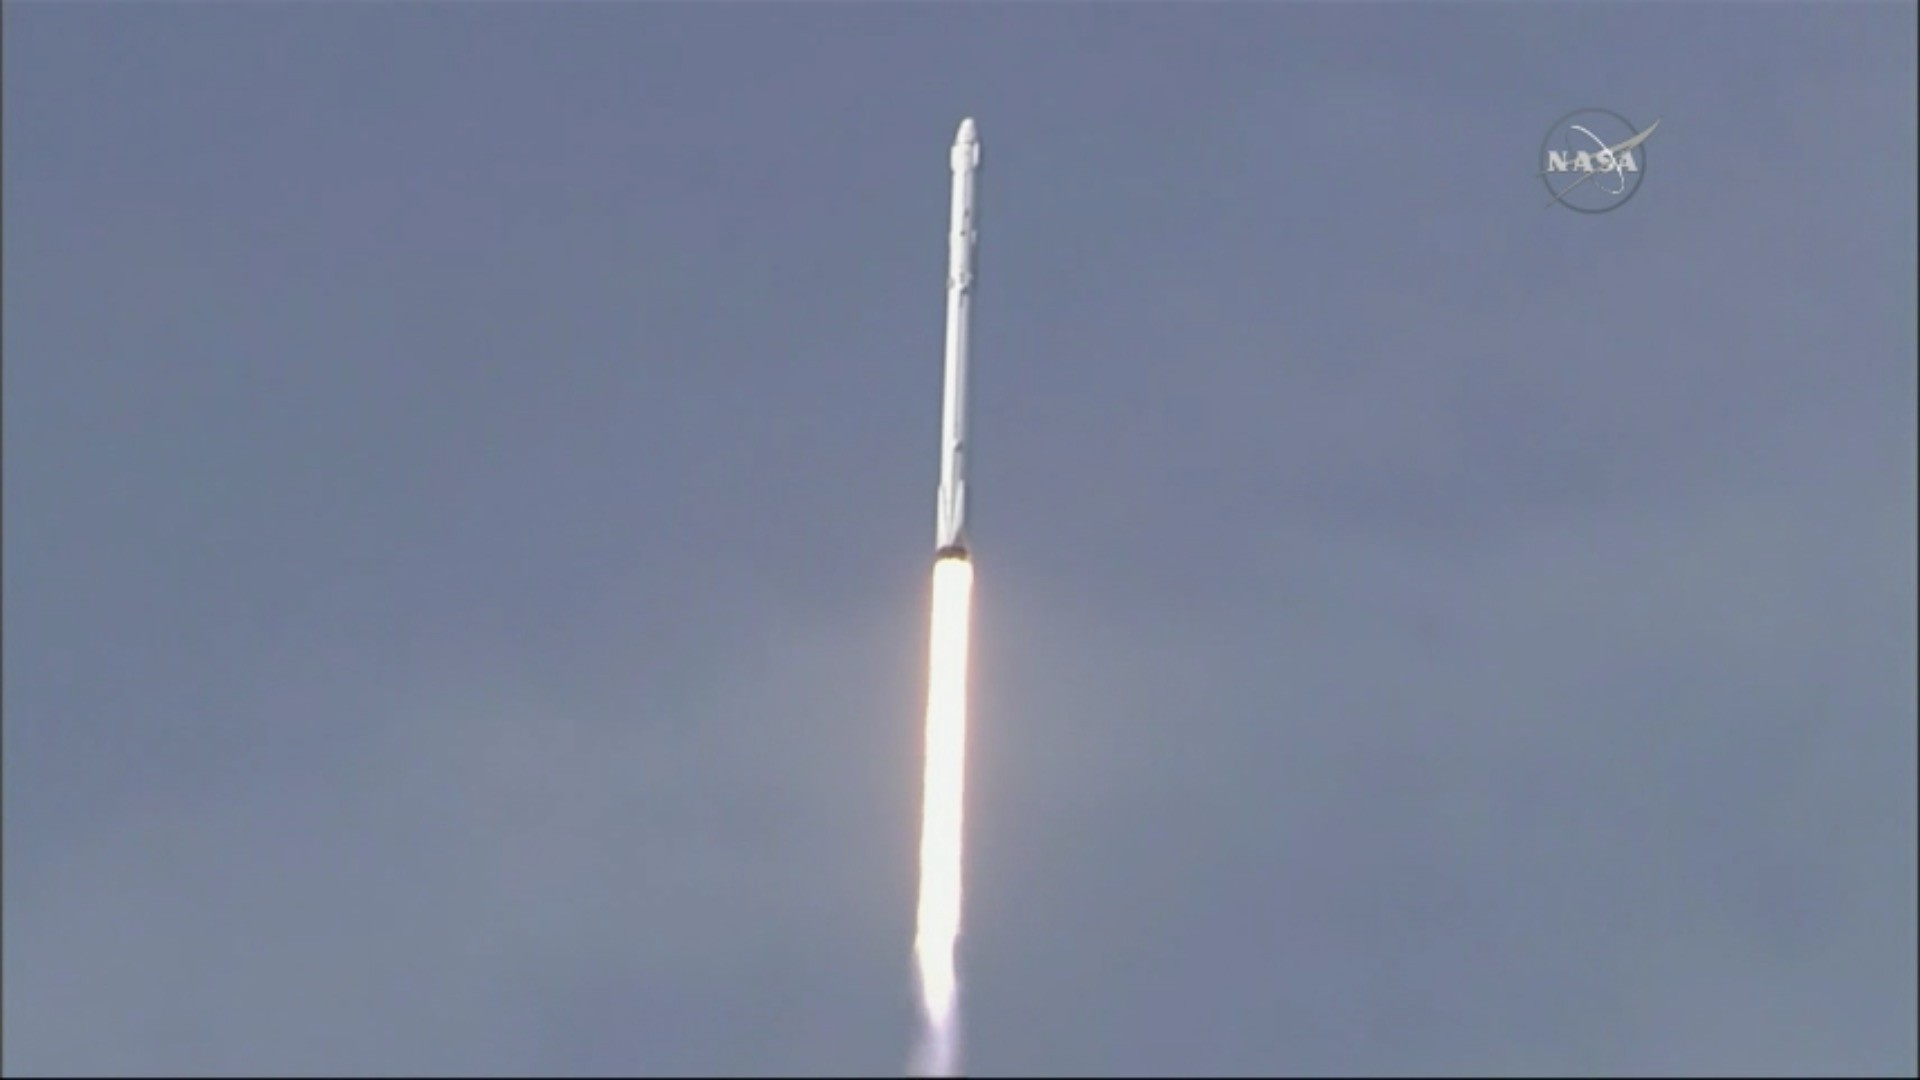 spacex rocket lifts payload to international space station pop up room mail pop up room dividers